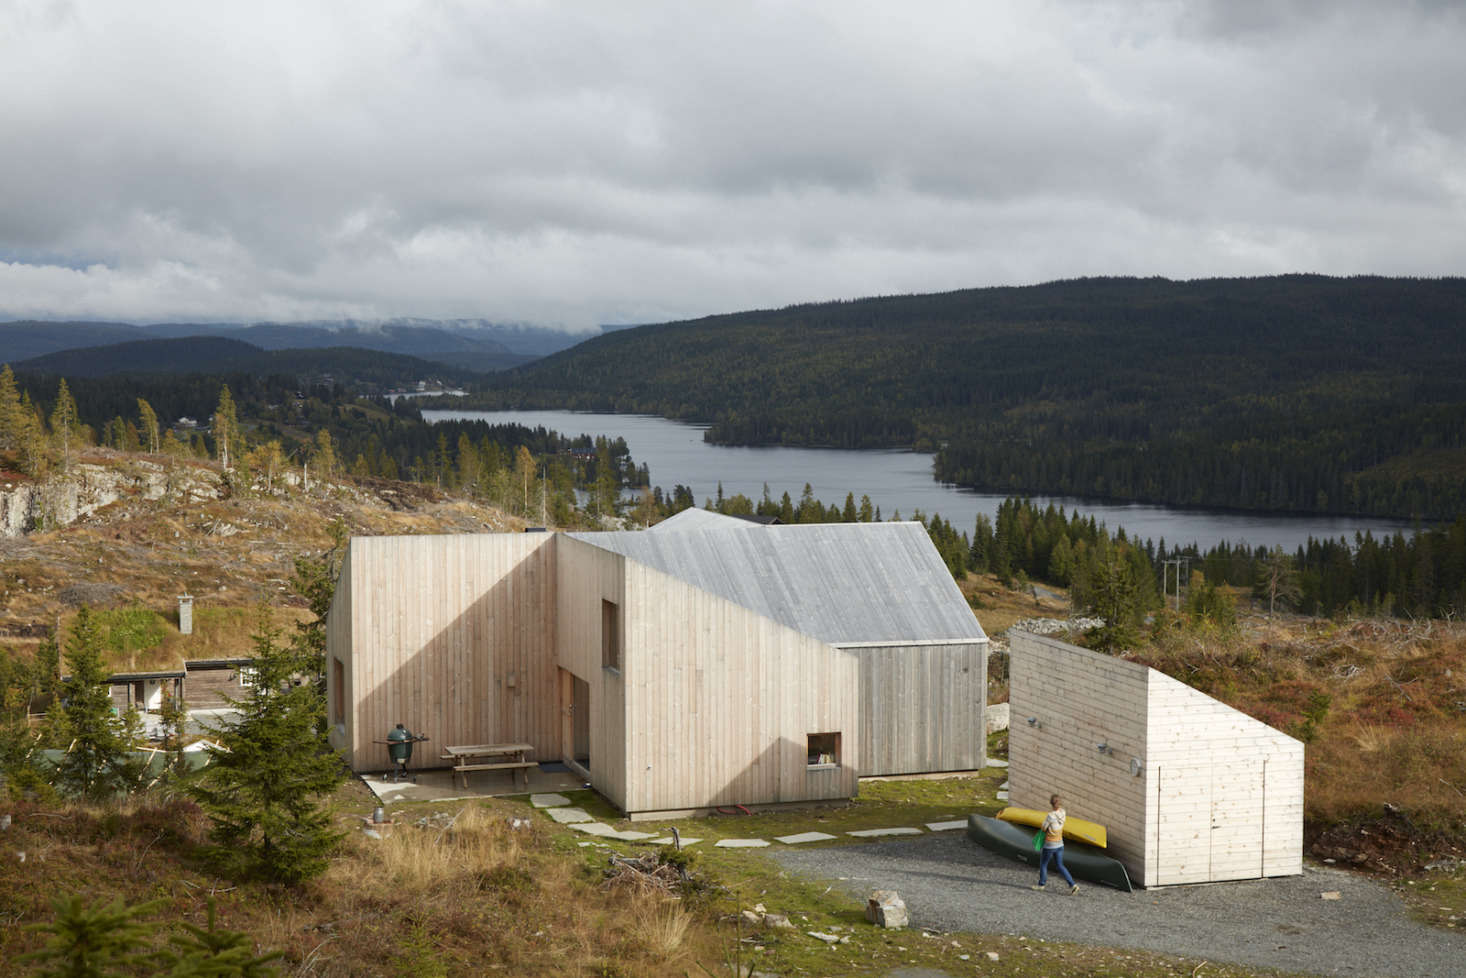 The exterior is sided with untreated pine and the roof also is clad in wood.